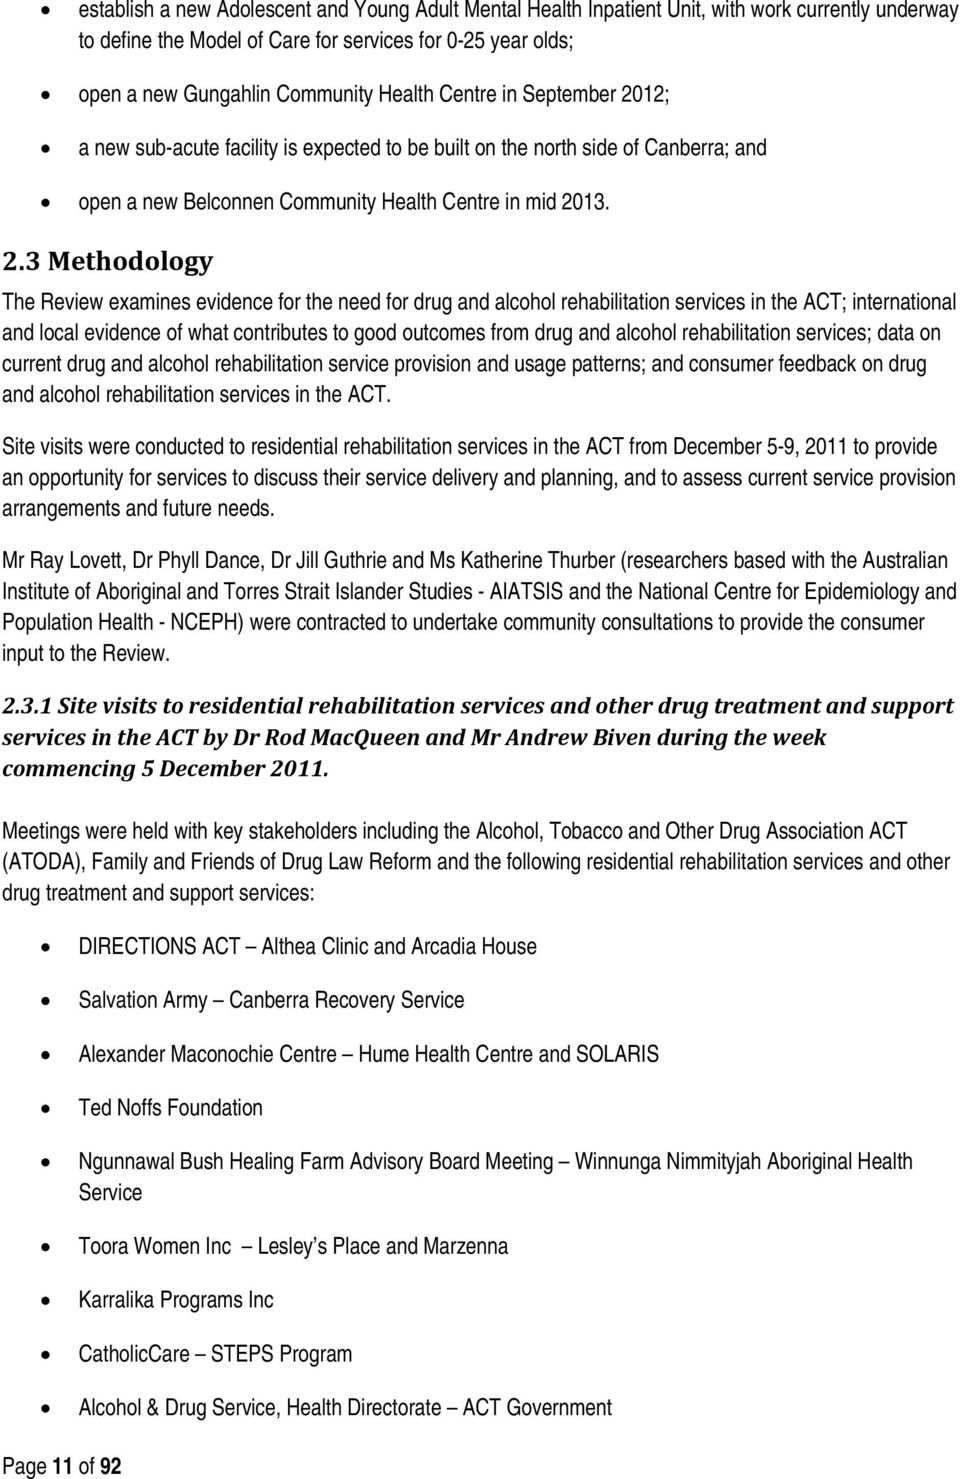 12; a new sub-acute facility is expected to be built on the north side of Canberra; and open a new Belconnen Community Health Centre in mid 20